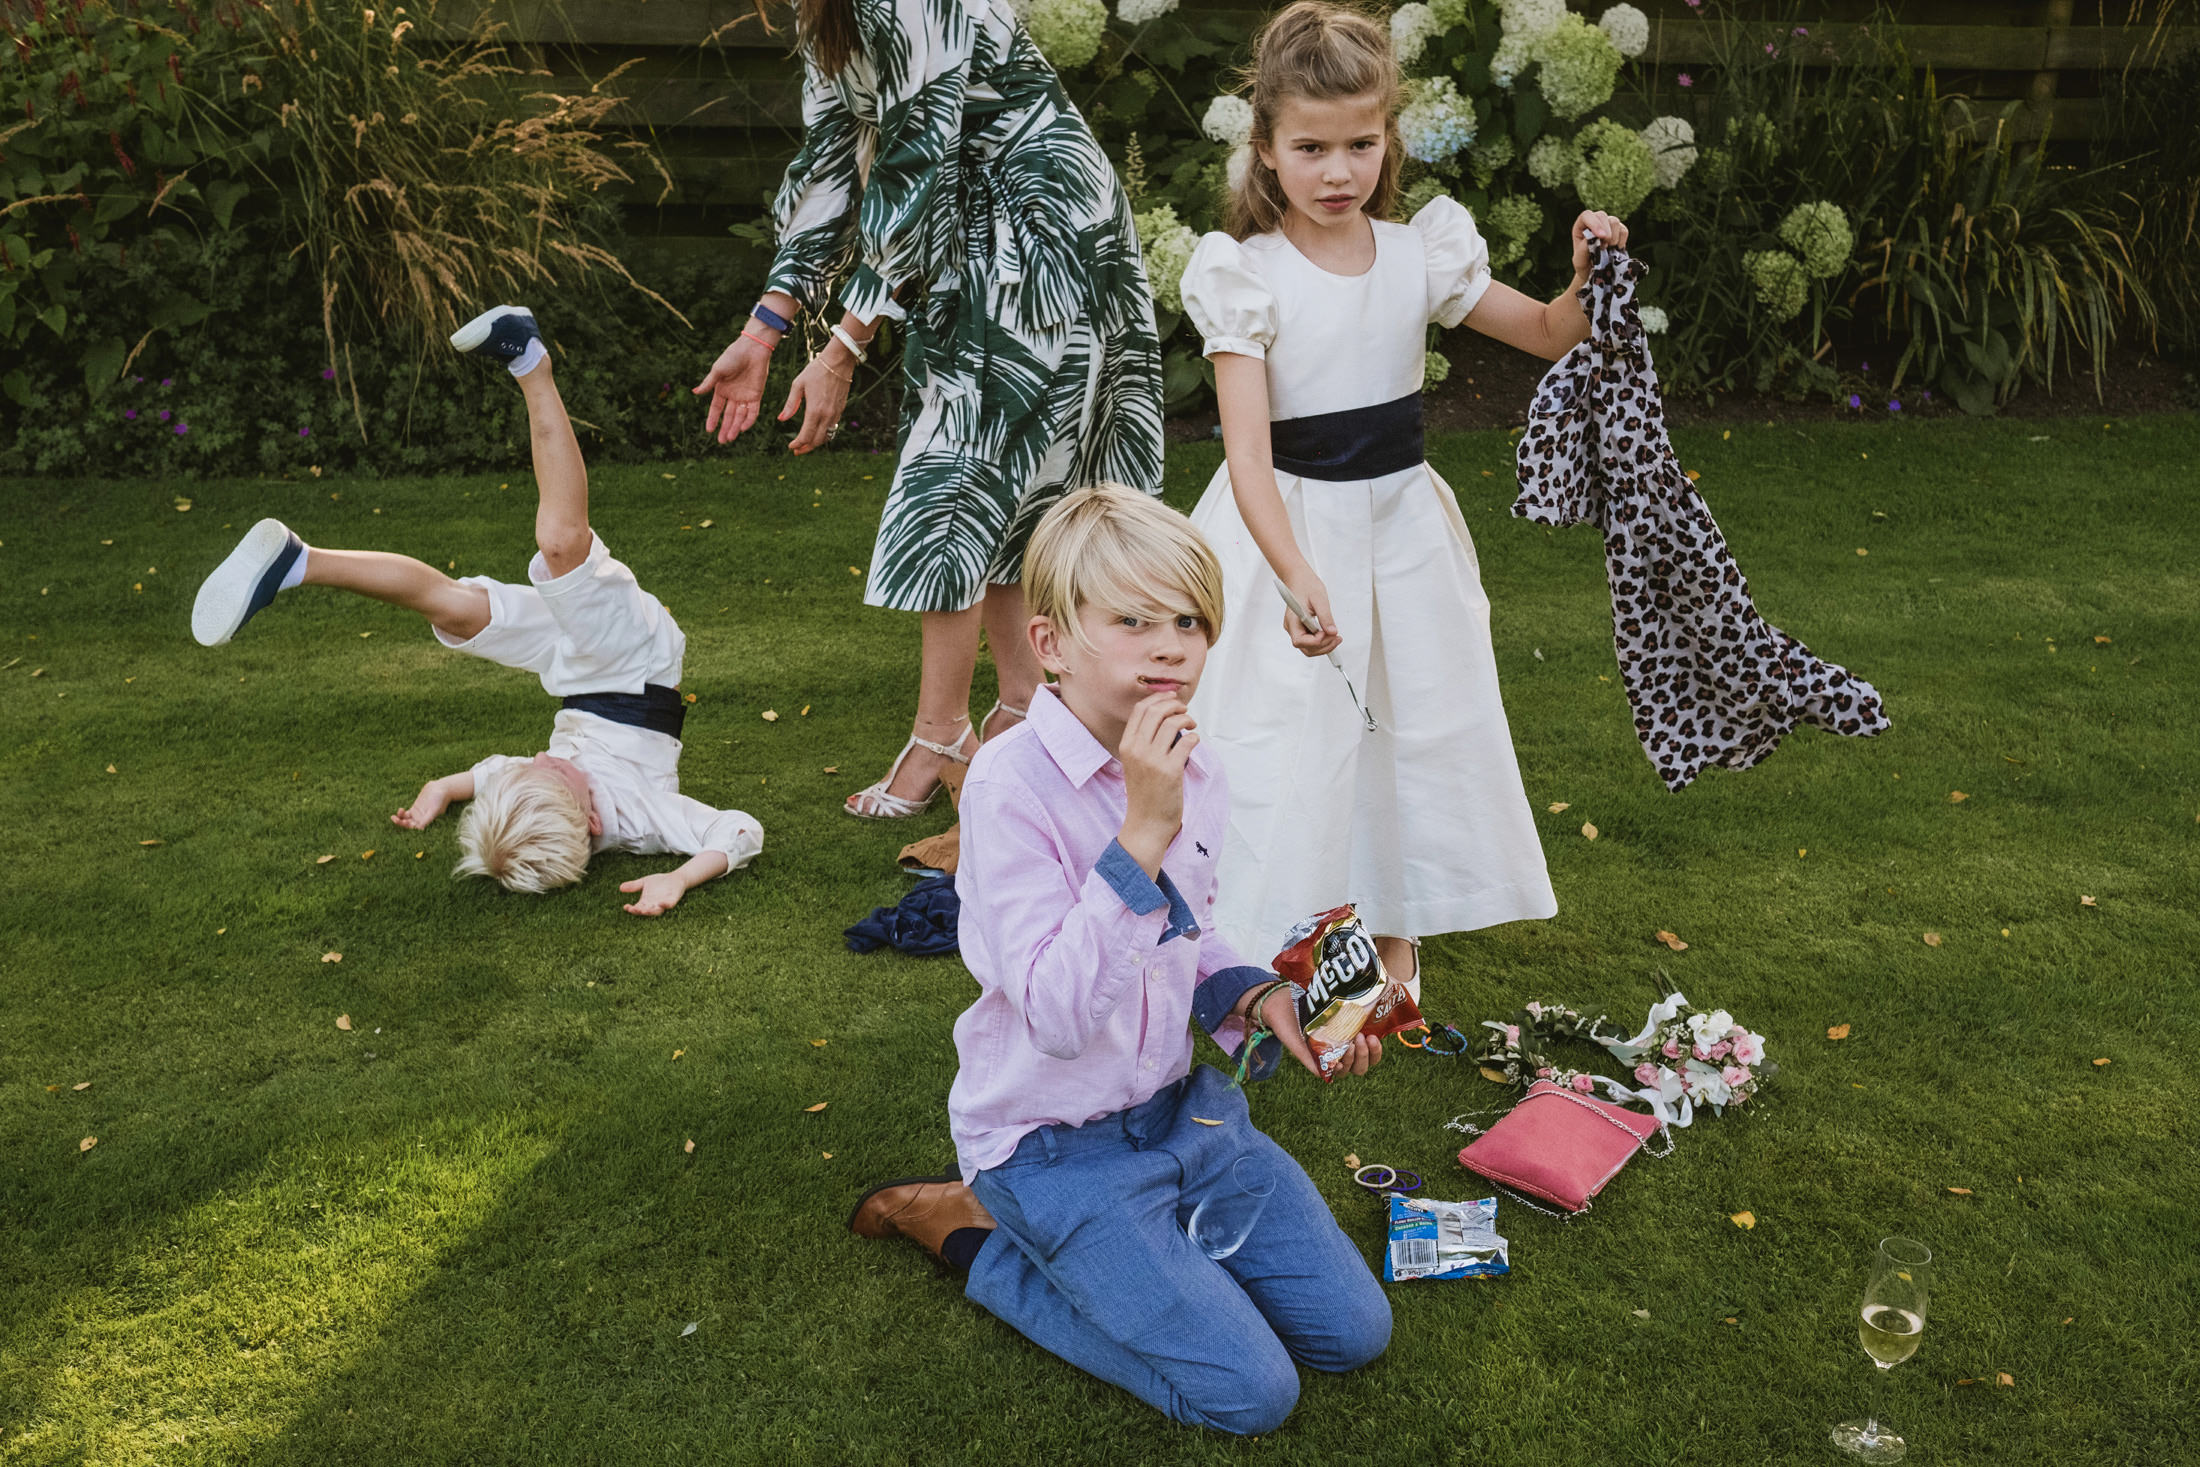 Cheshire documentary wedding photography with page boys and flower girl